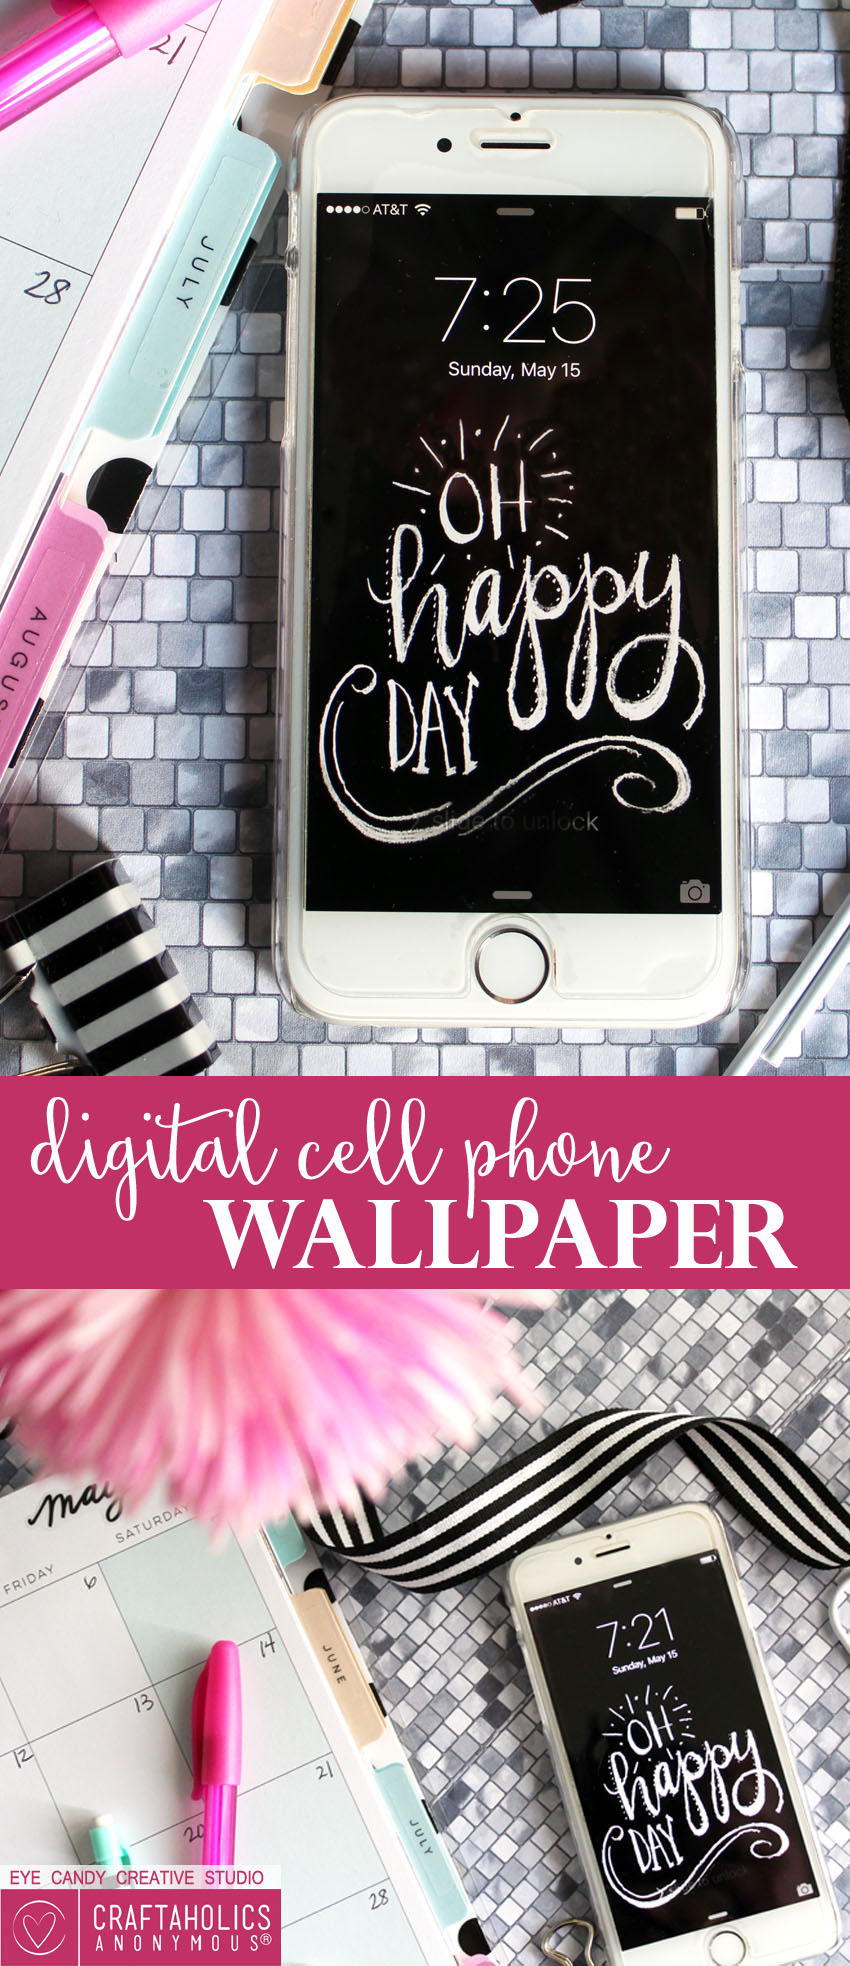 Download this Free Cellphone Wallpaper for a daily happy reminder to be happy! Get it at craftaholicsanonymous.net!